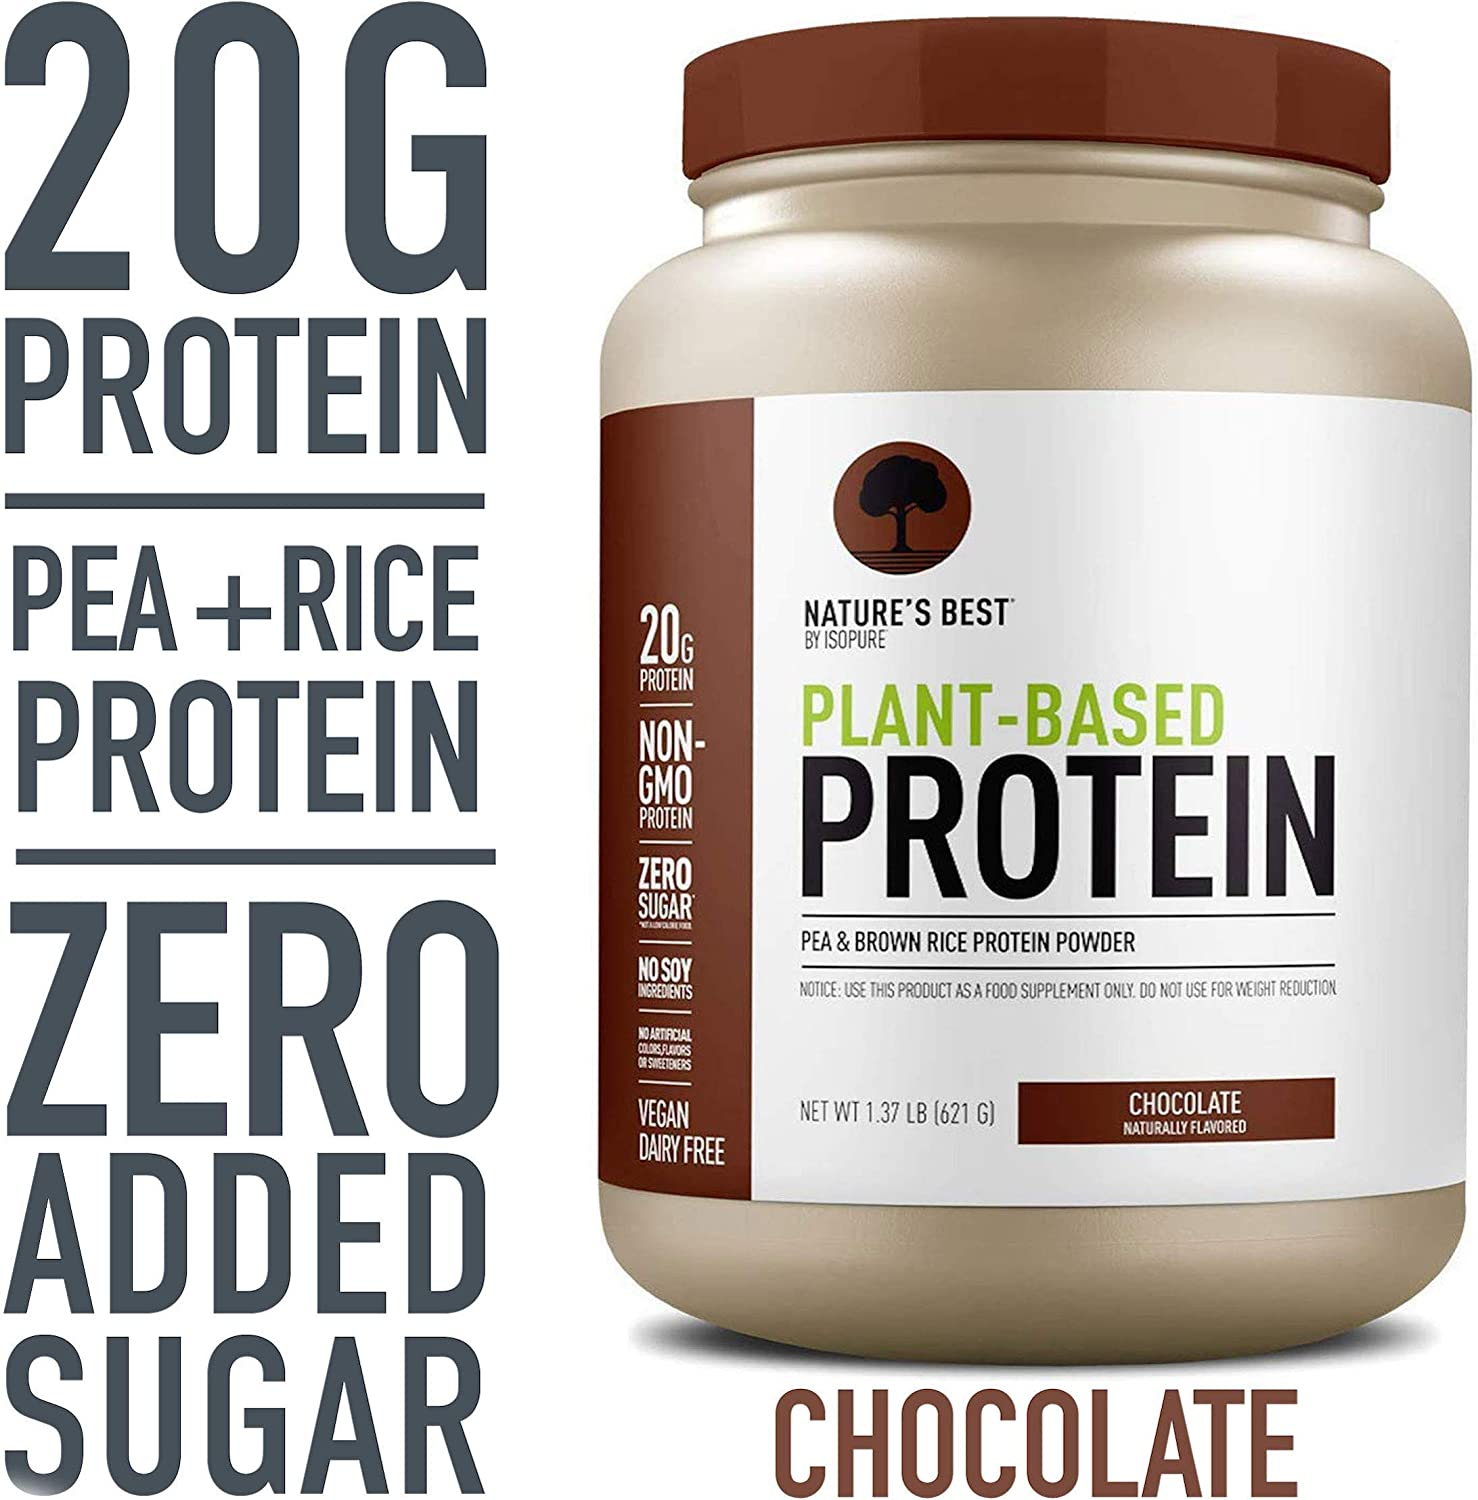 Nature's Best Plant Based Vegan Protein Powder by Isopure - Organic Keto Friendly, Low Carb, Gluten Free, 20g Protein, 0g Sugar, Chocolate, 20 Servings: Health & Personal Care